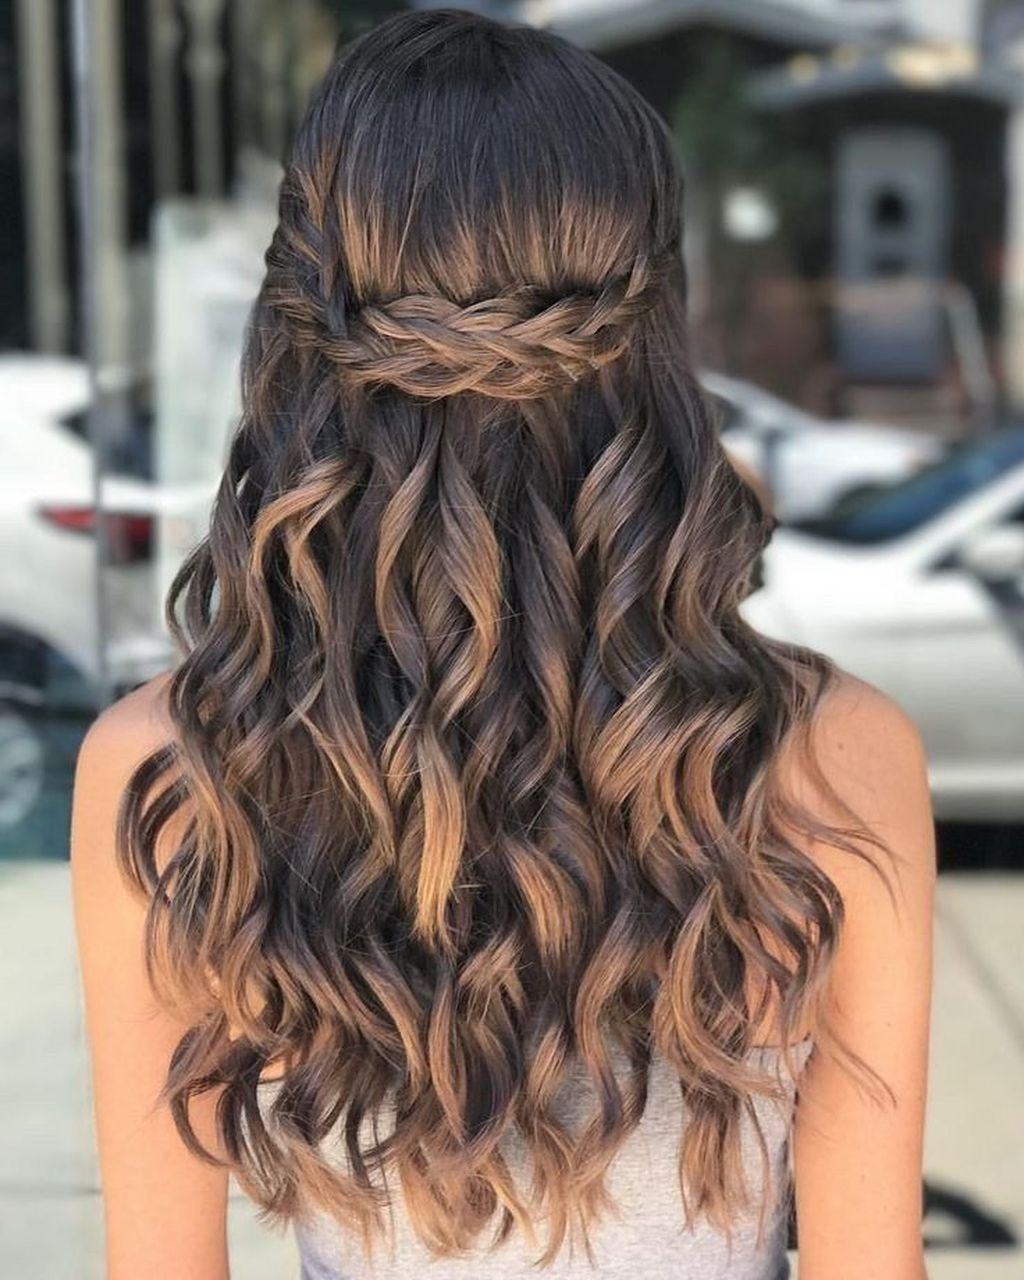 Pretty Prom Hairstyle Idea for Curly Lonh Hair. | Easy hairstyles for long hair, Curly hair ...